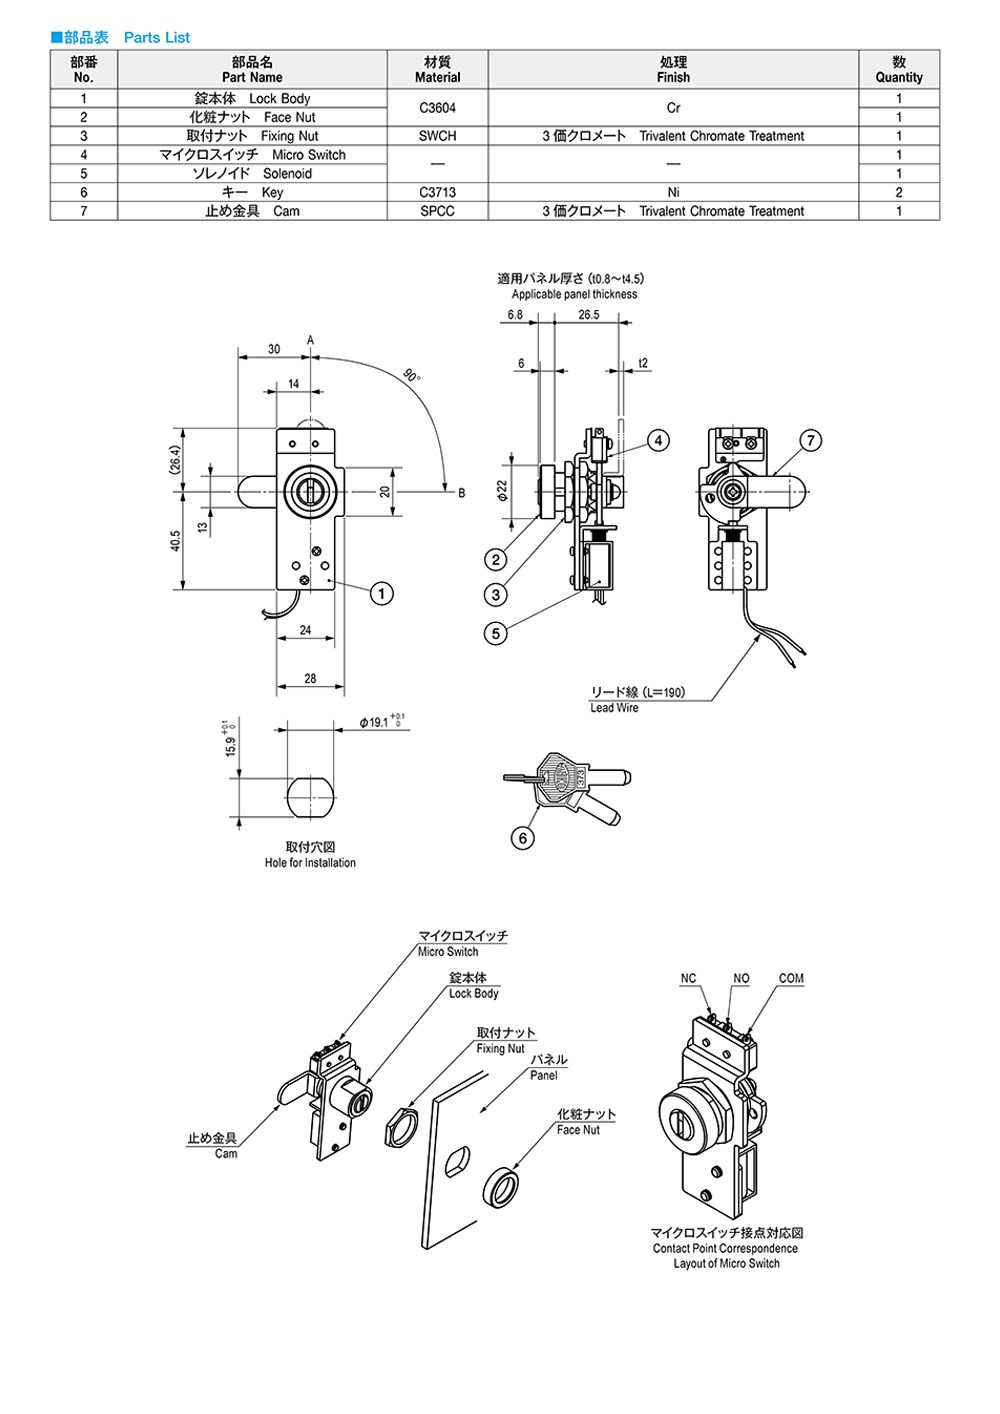 Tl-373 Micro Switch Cam Lock C3604 Rohs Japan 2d 3d Cad ... on drum switches diagram, single phase drum switch connection diagram, single-phase motor reversing diagram, raspberry pi 2 microphone circuit diagram, cam position sensor diagram, 3 wire sensor diagram, 2000 amp manual transfer switch diagram, raspberry pi connection diagram, reverse switch diagram,